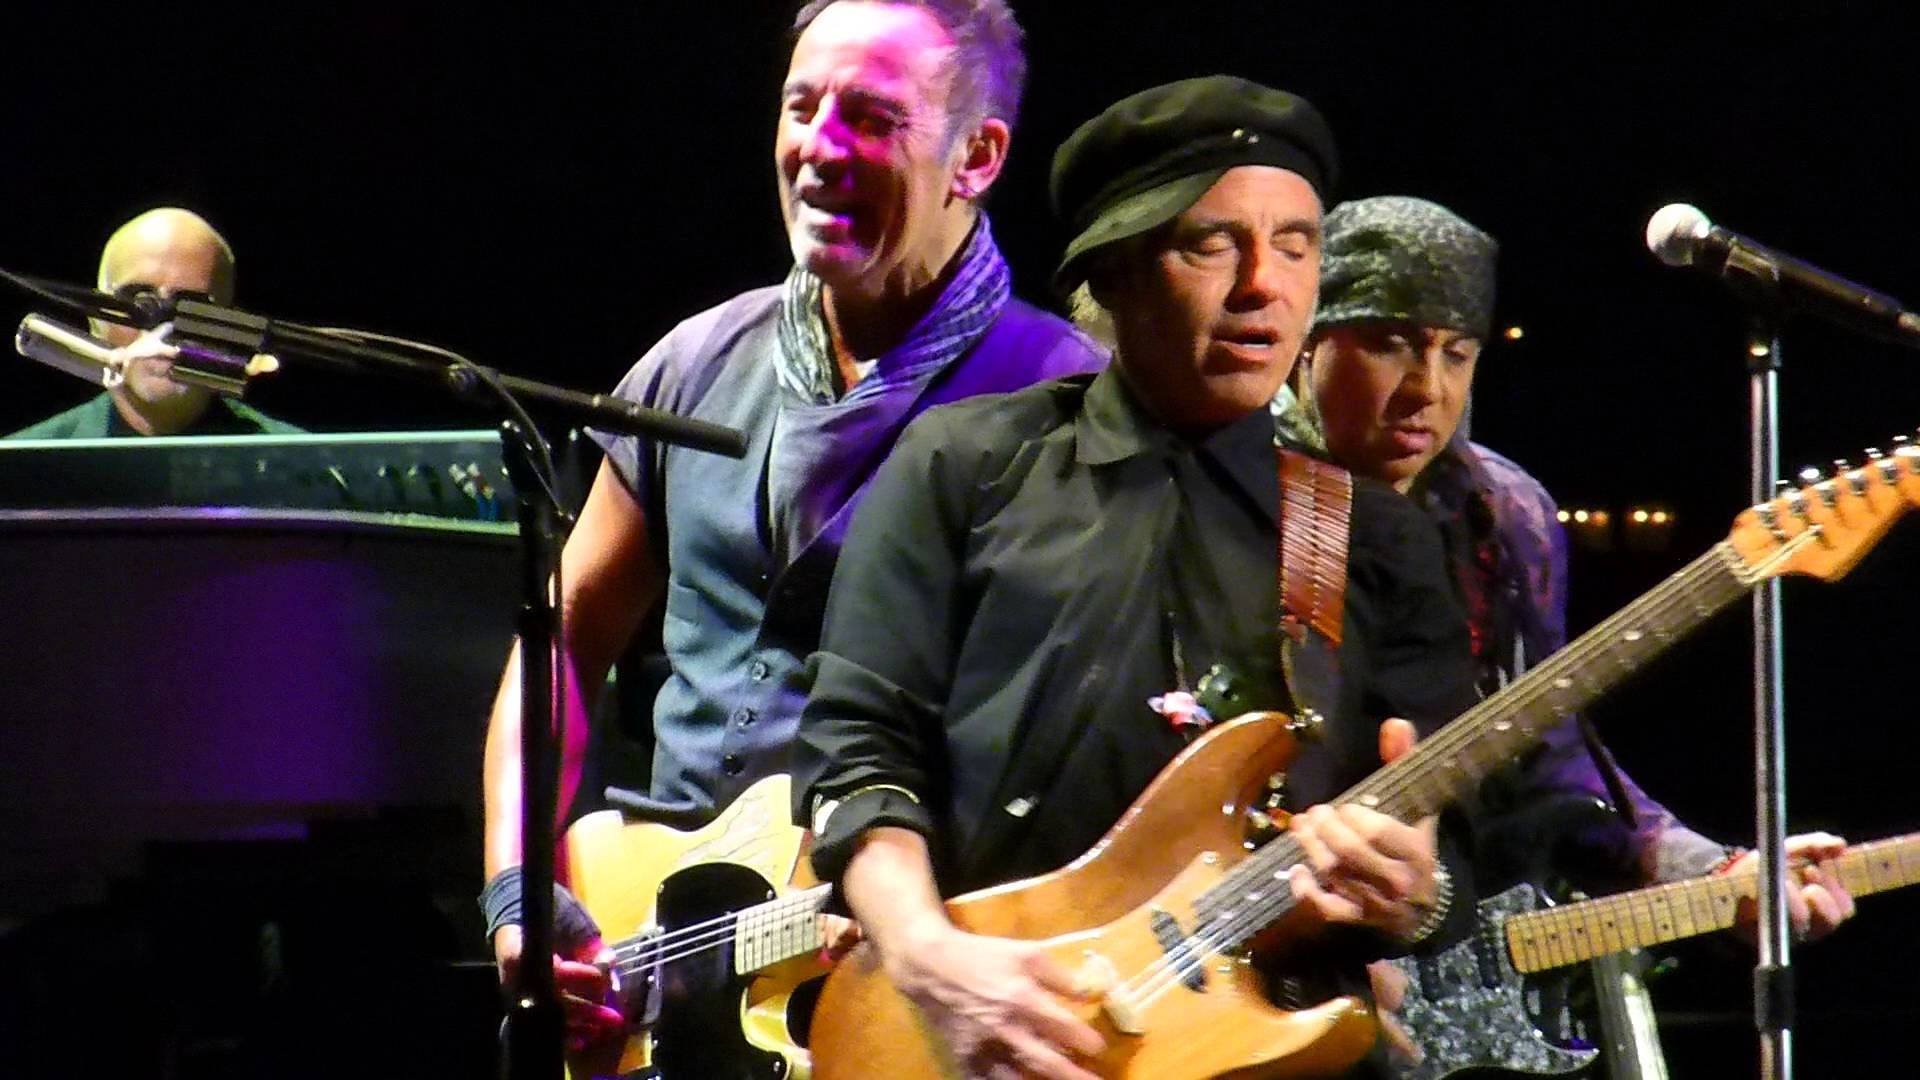 Bruce Springsteen Cadillac Ranch St Paul Mn 2 29 16 Hd Born To